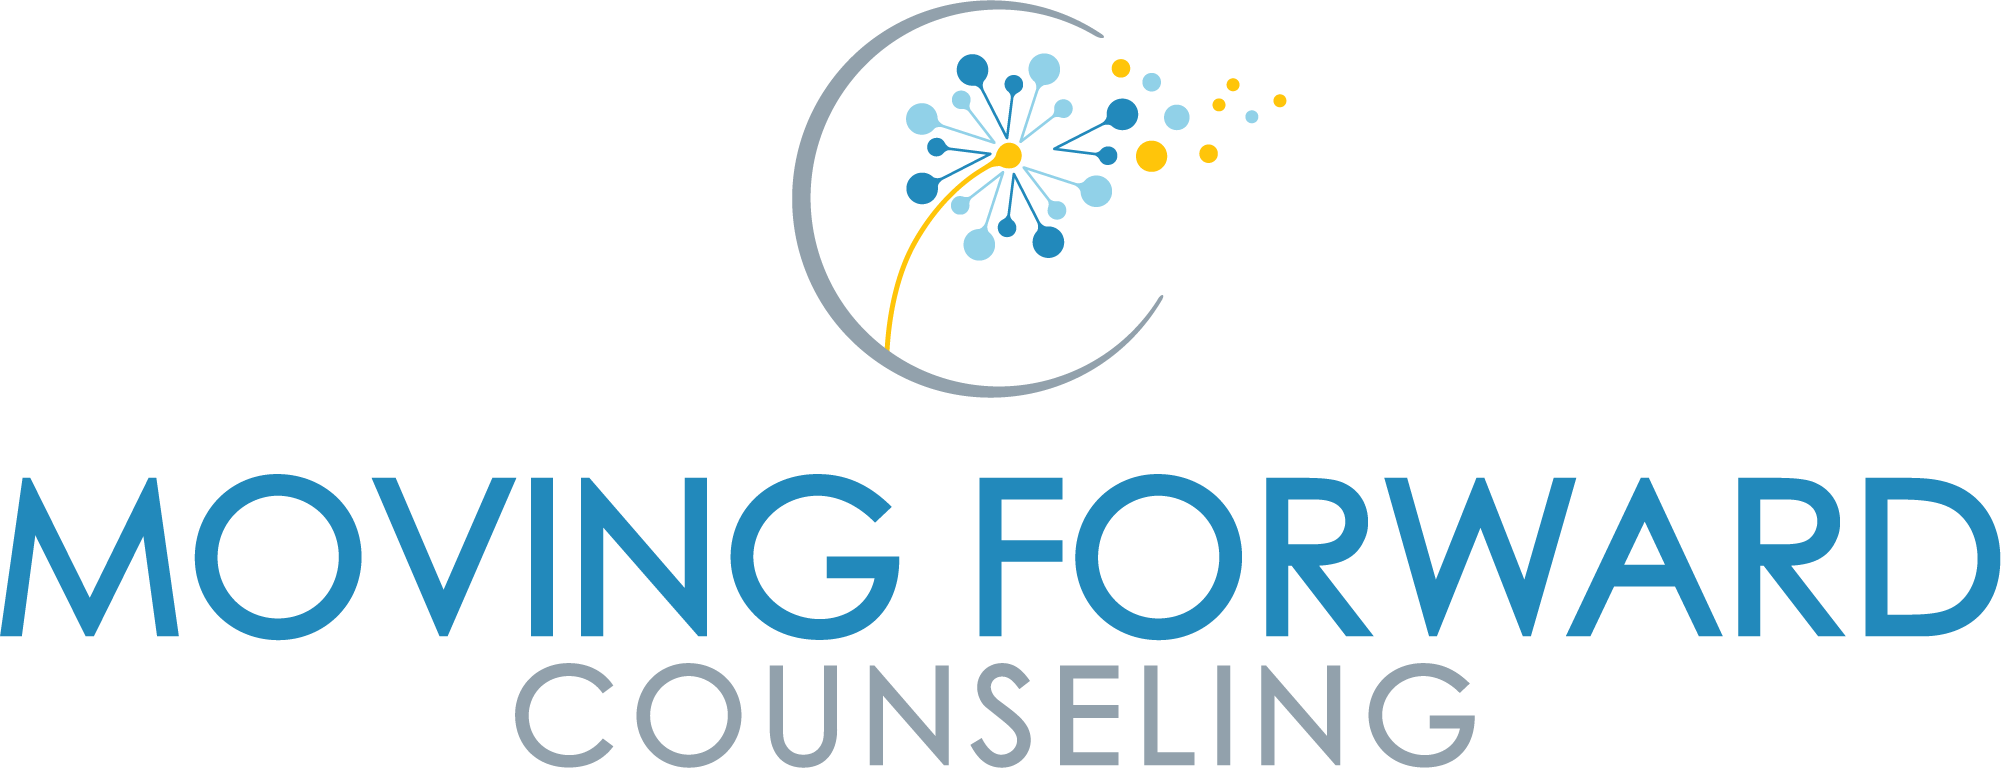 Moving Forward Counseling